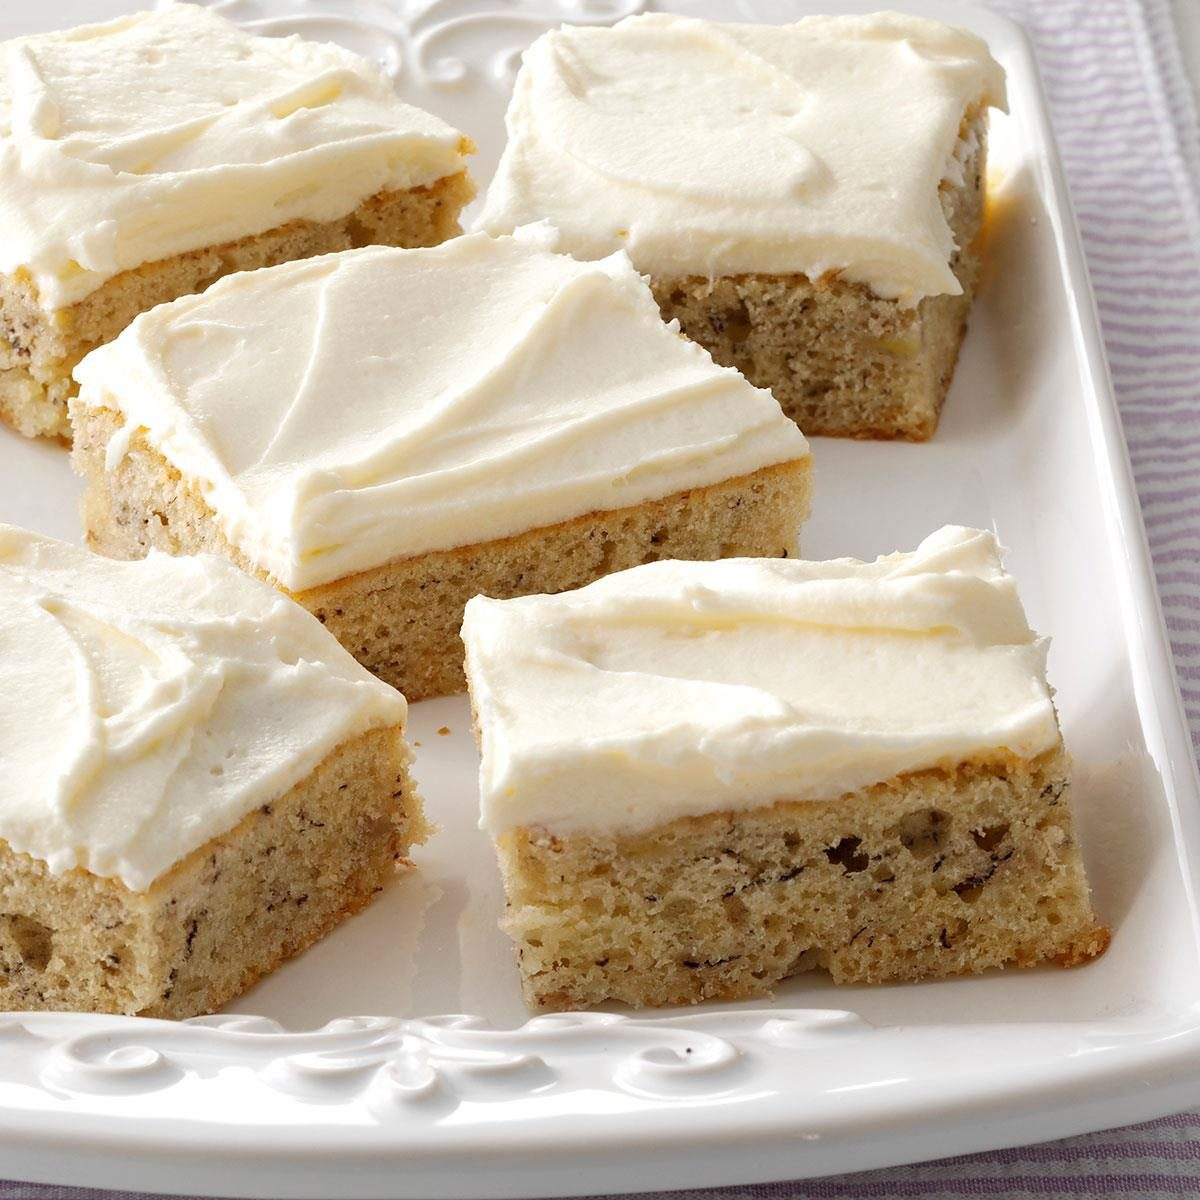 Easy Cream Cheese Frosting For Banana Cake